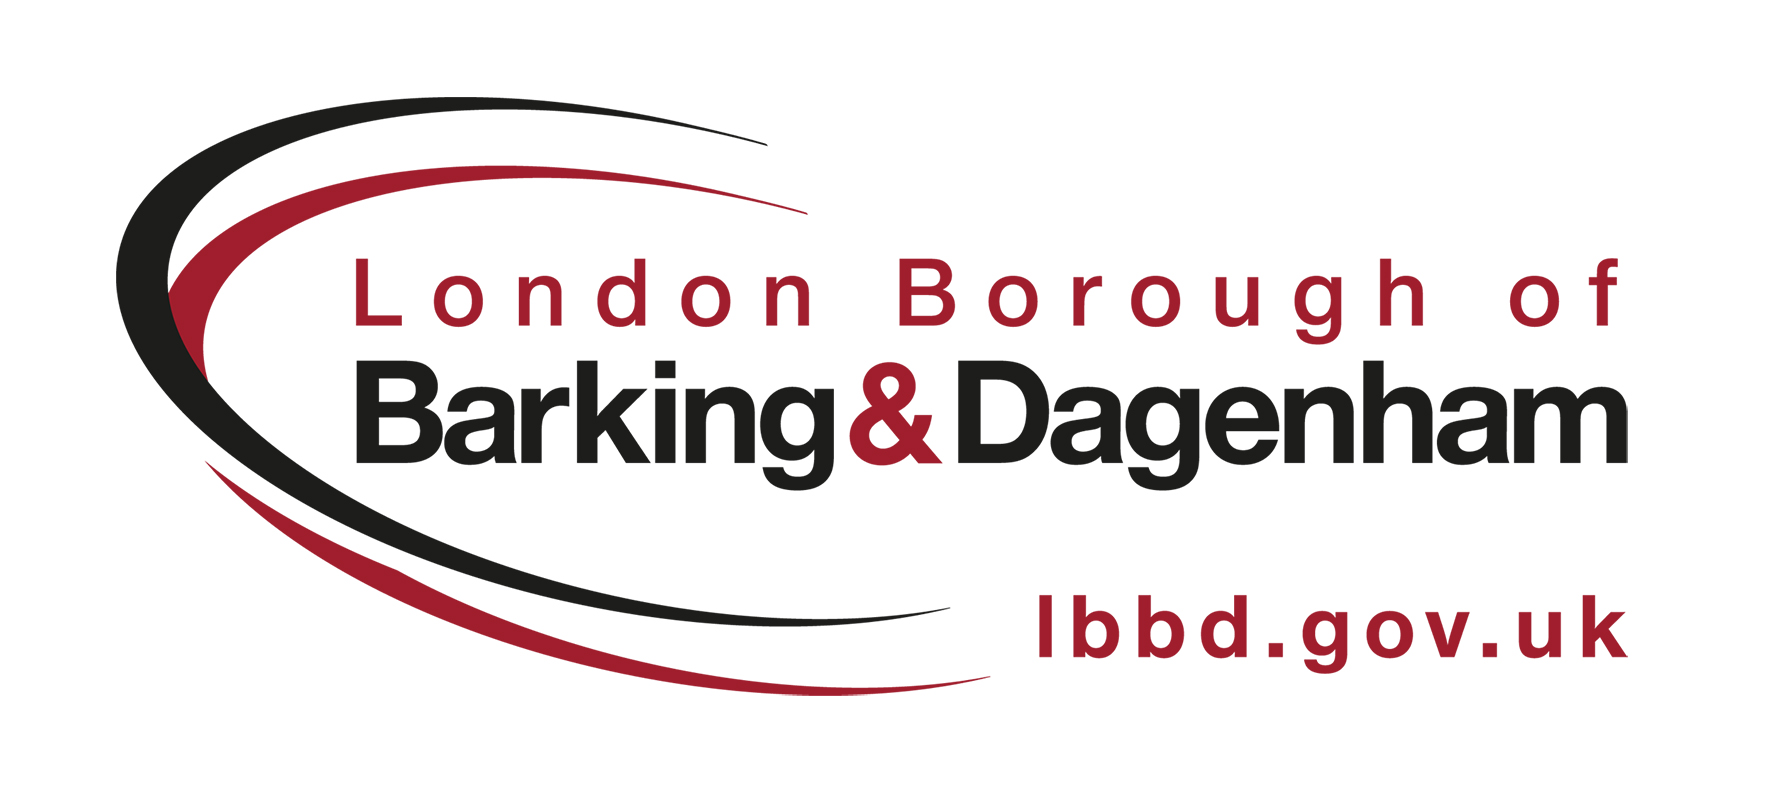 London Borough of Barking & Dagenham